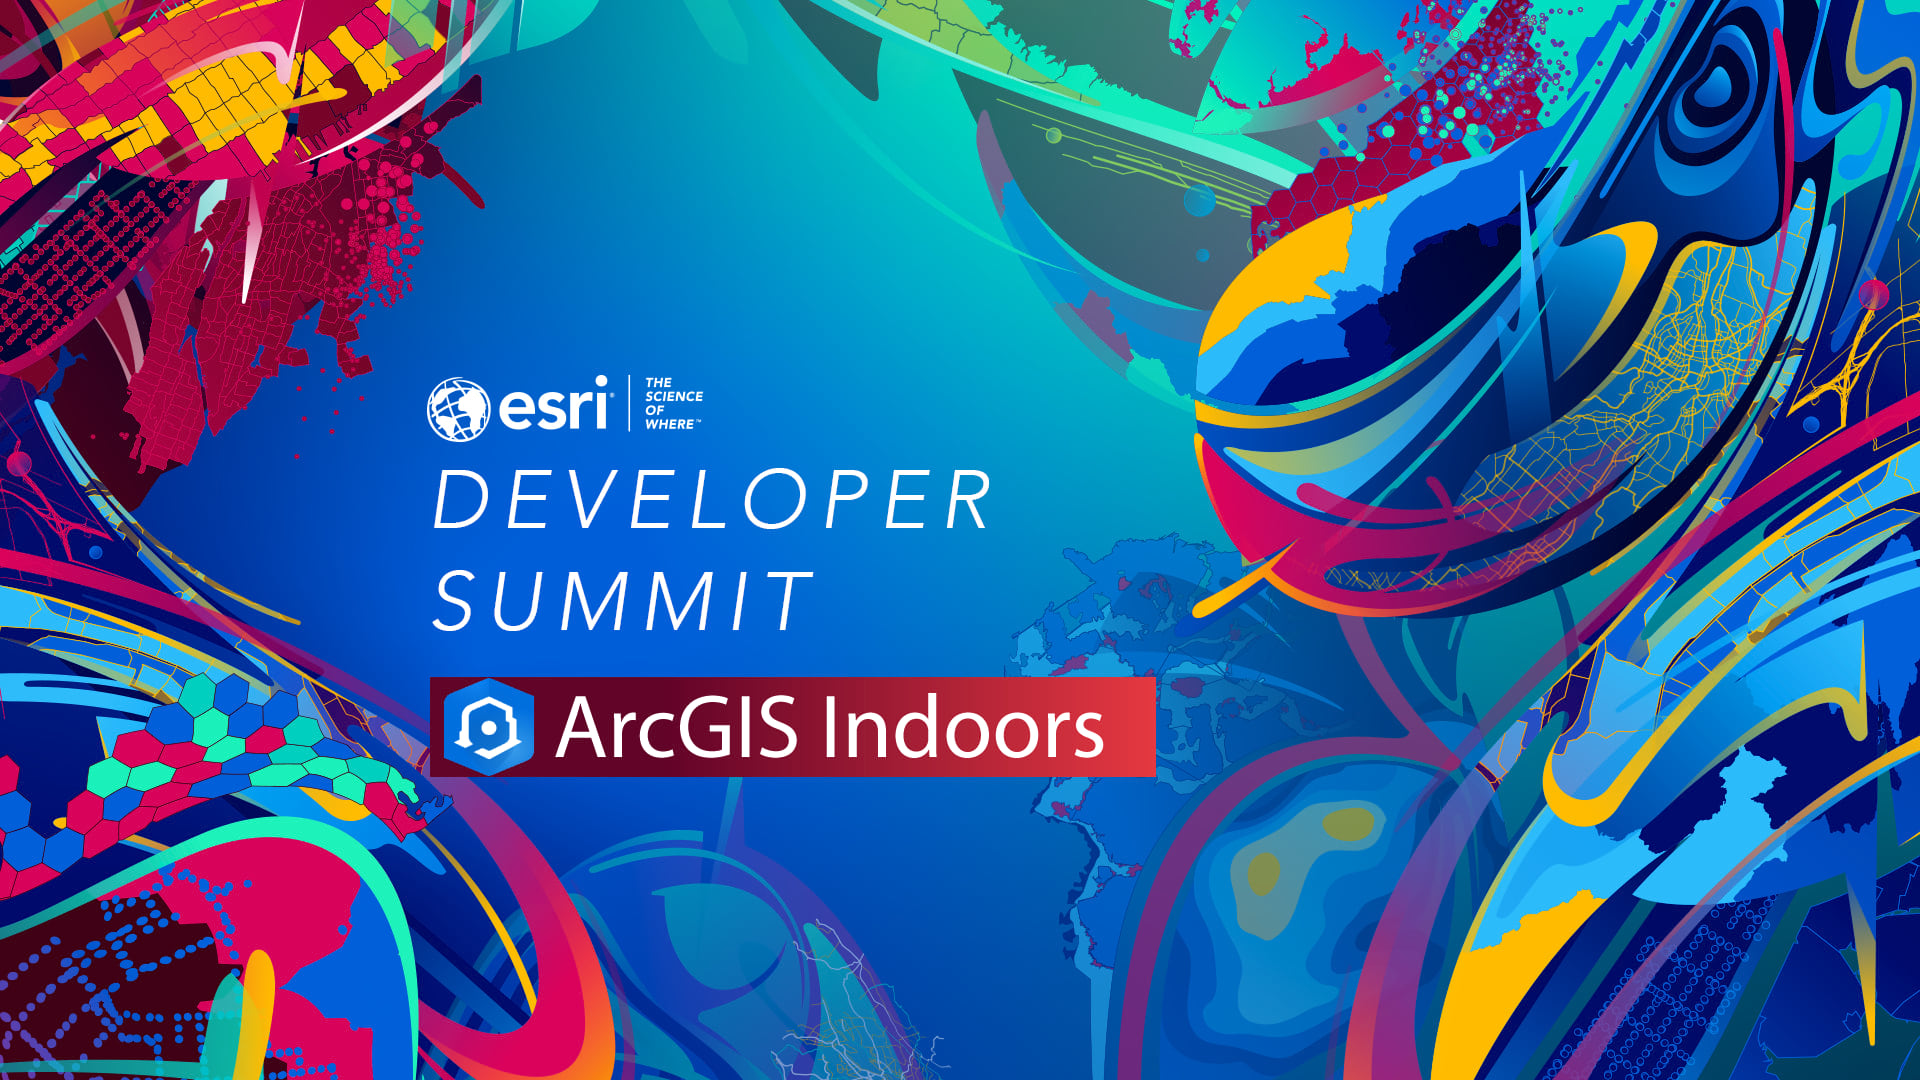 ArcGIS Indoors at 2021 DevSummit banner